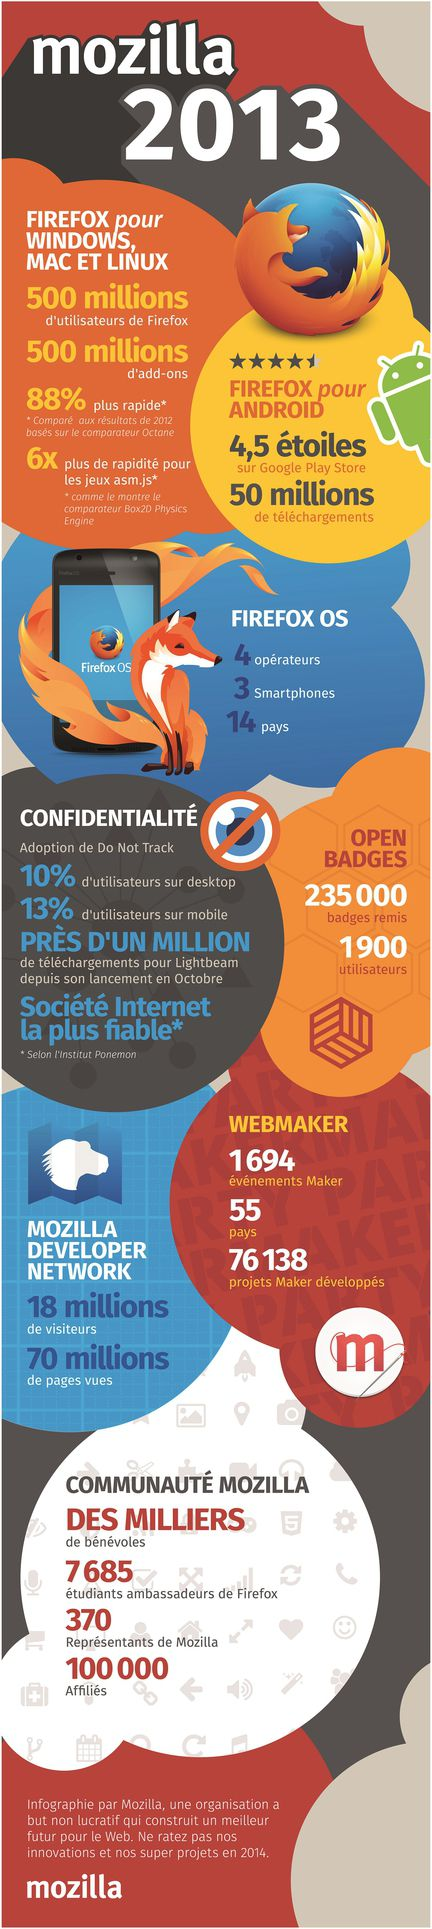 Mozilla_2013_Infographie